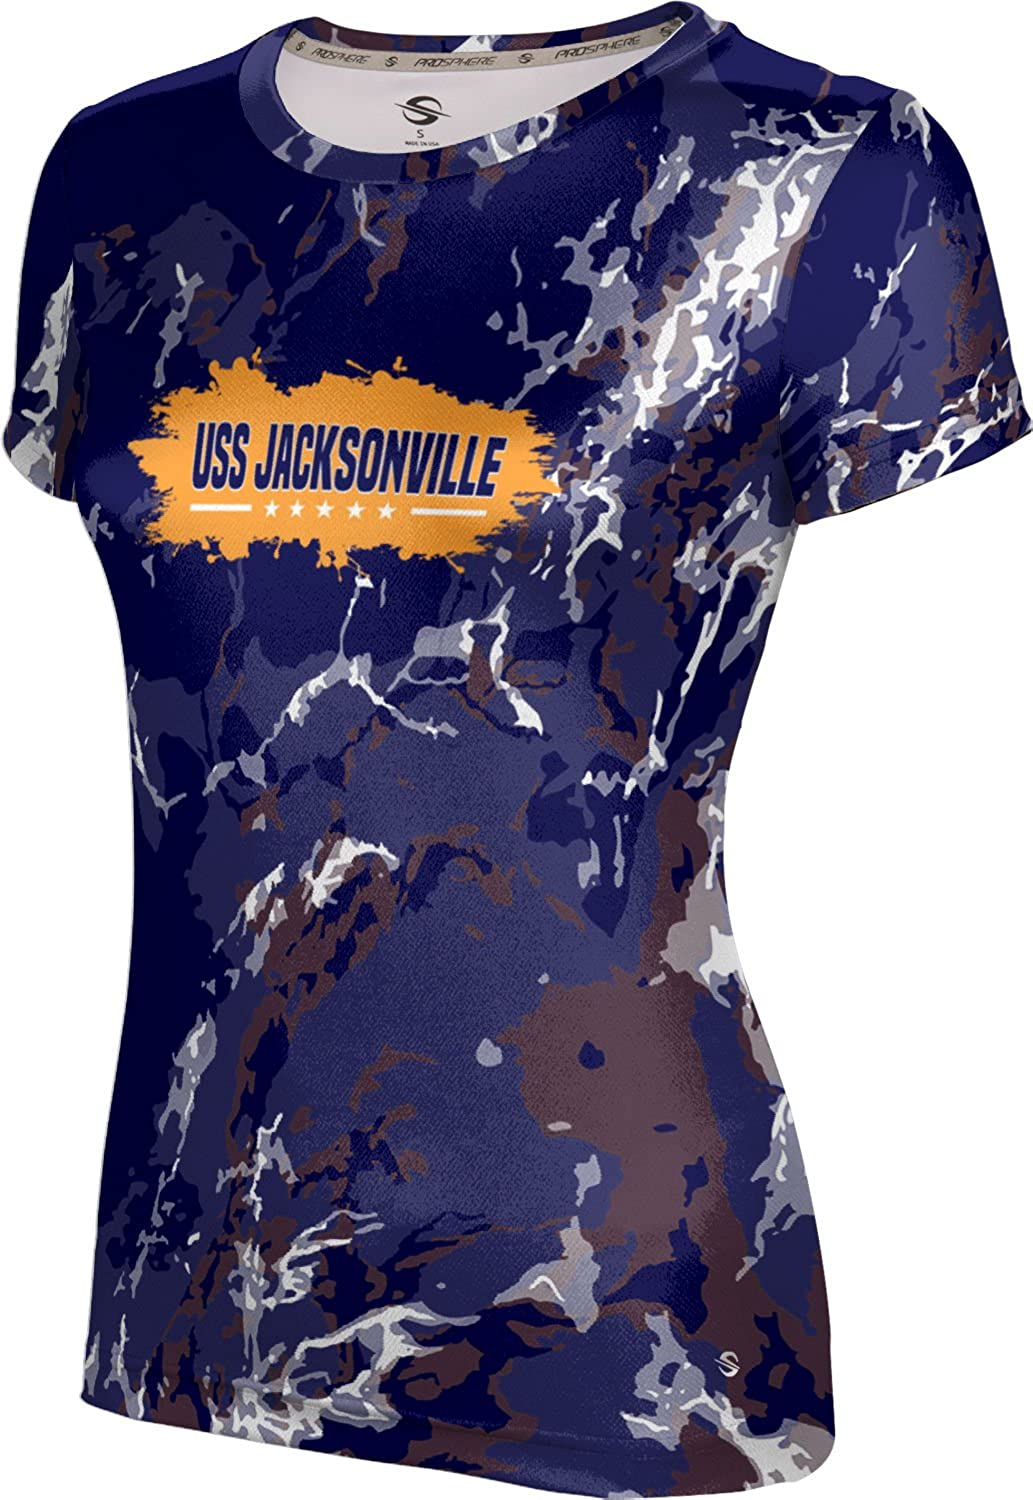 ProSphere Women's USS Jacksonville Military Marble Tech Tee